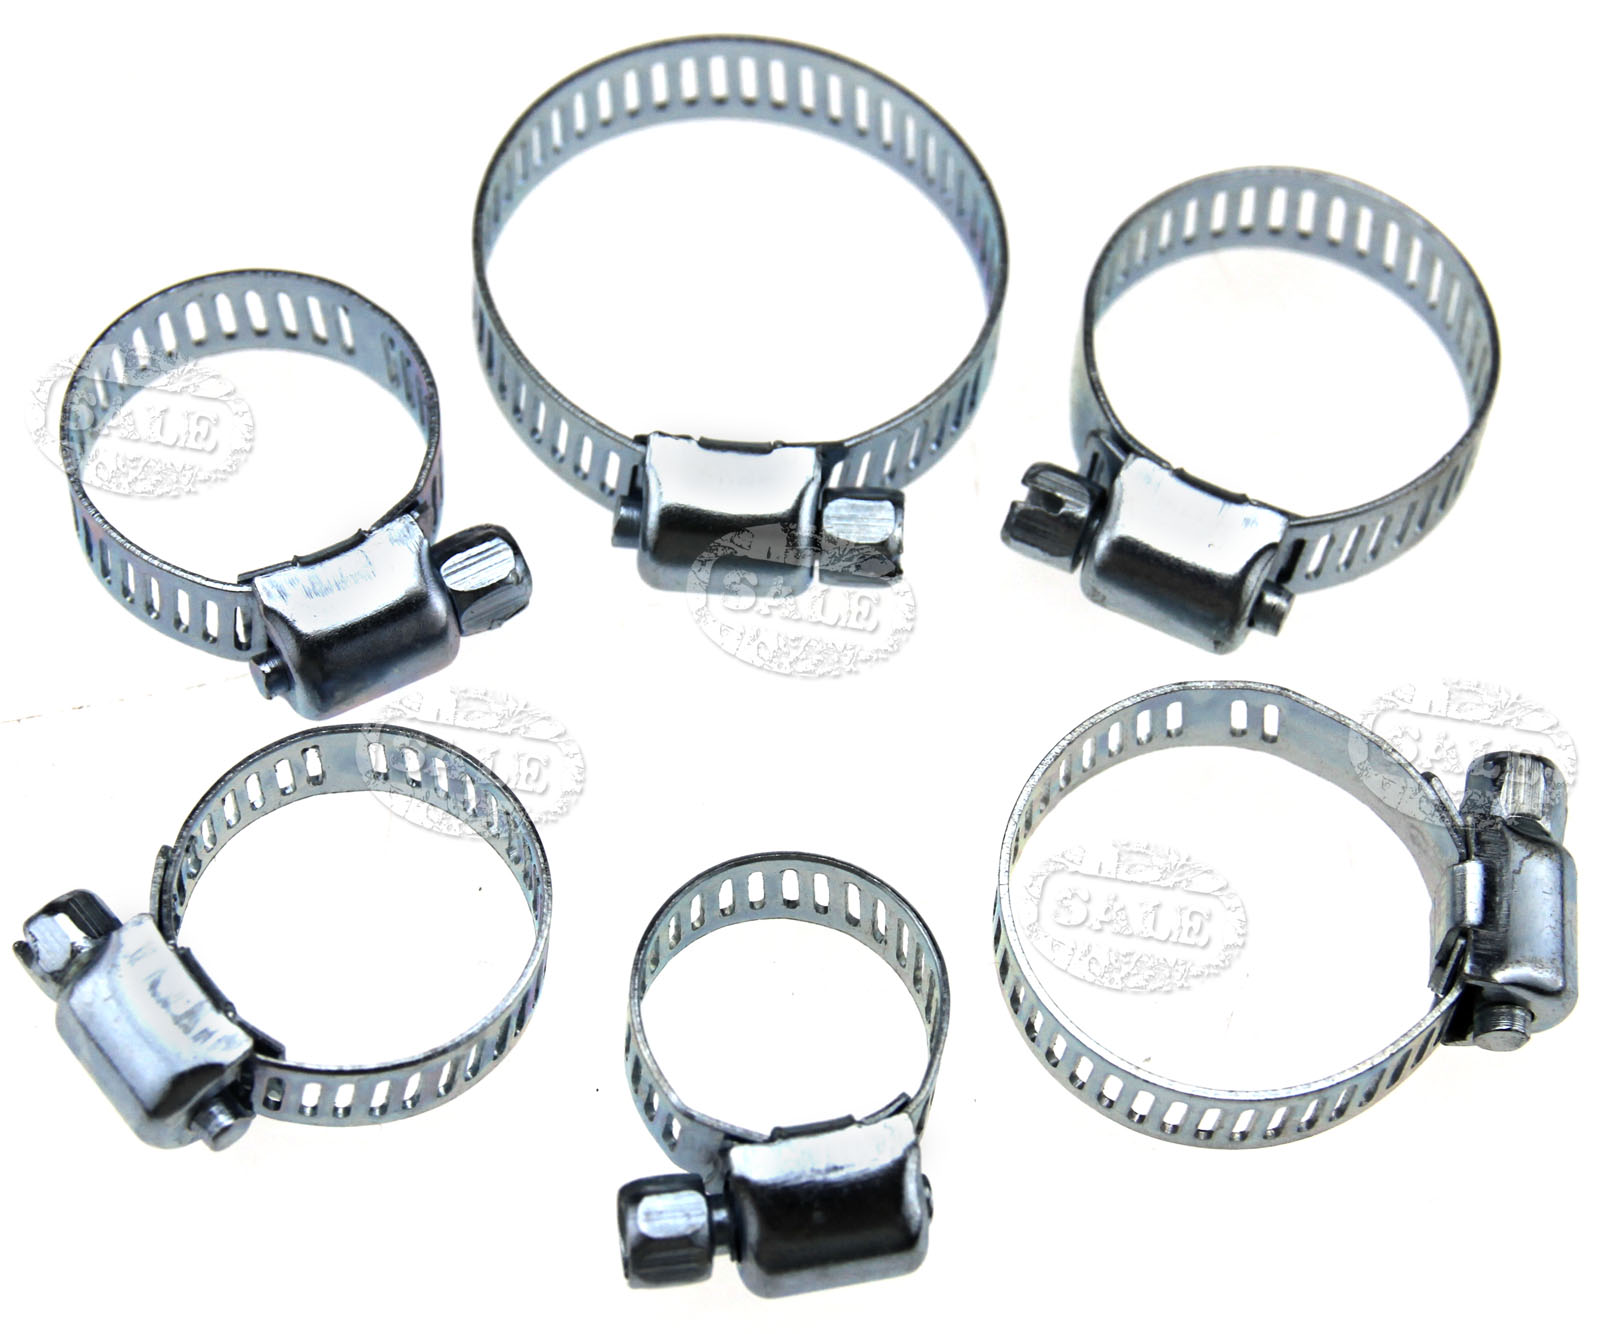 Pcs stainless steel different size hose clamp worm drive